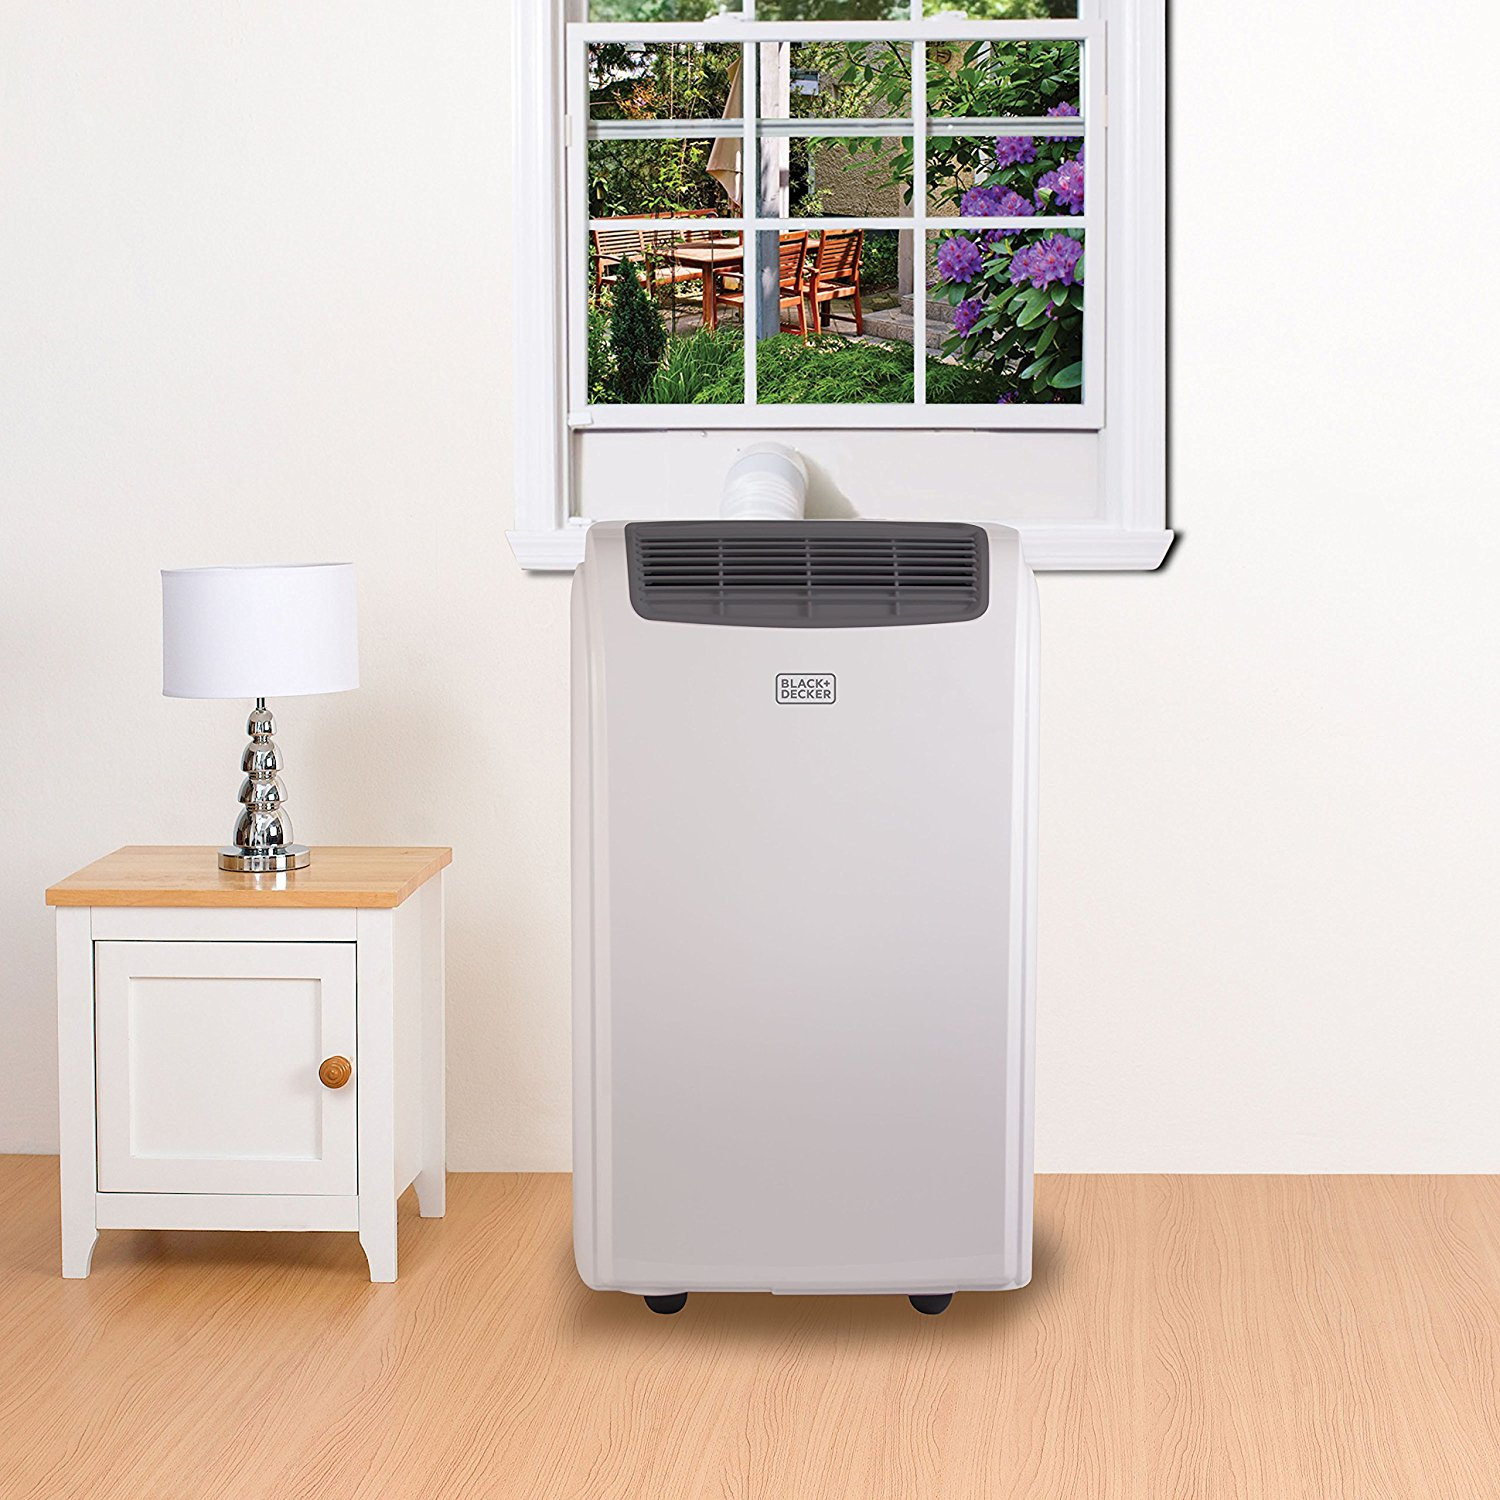 6 Best Portable Air Conditioners of 2017 - Best Small AC Units